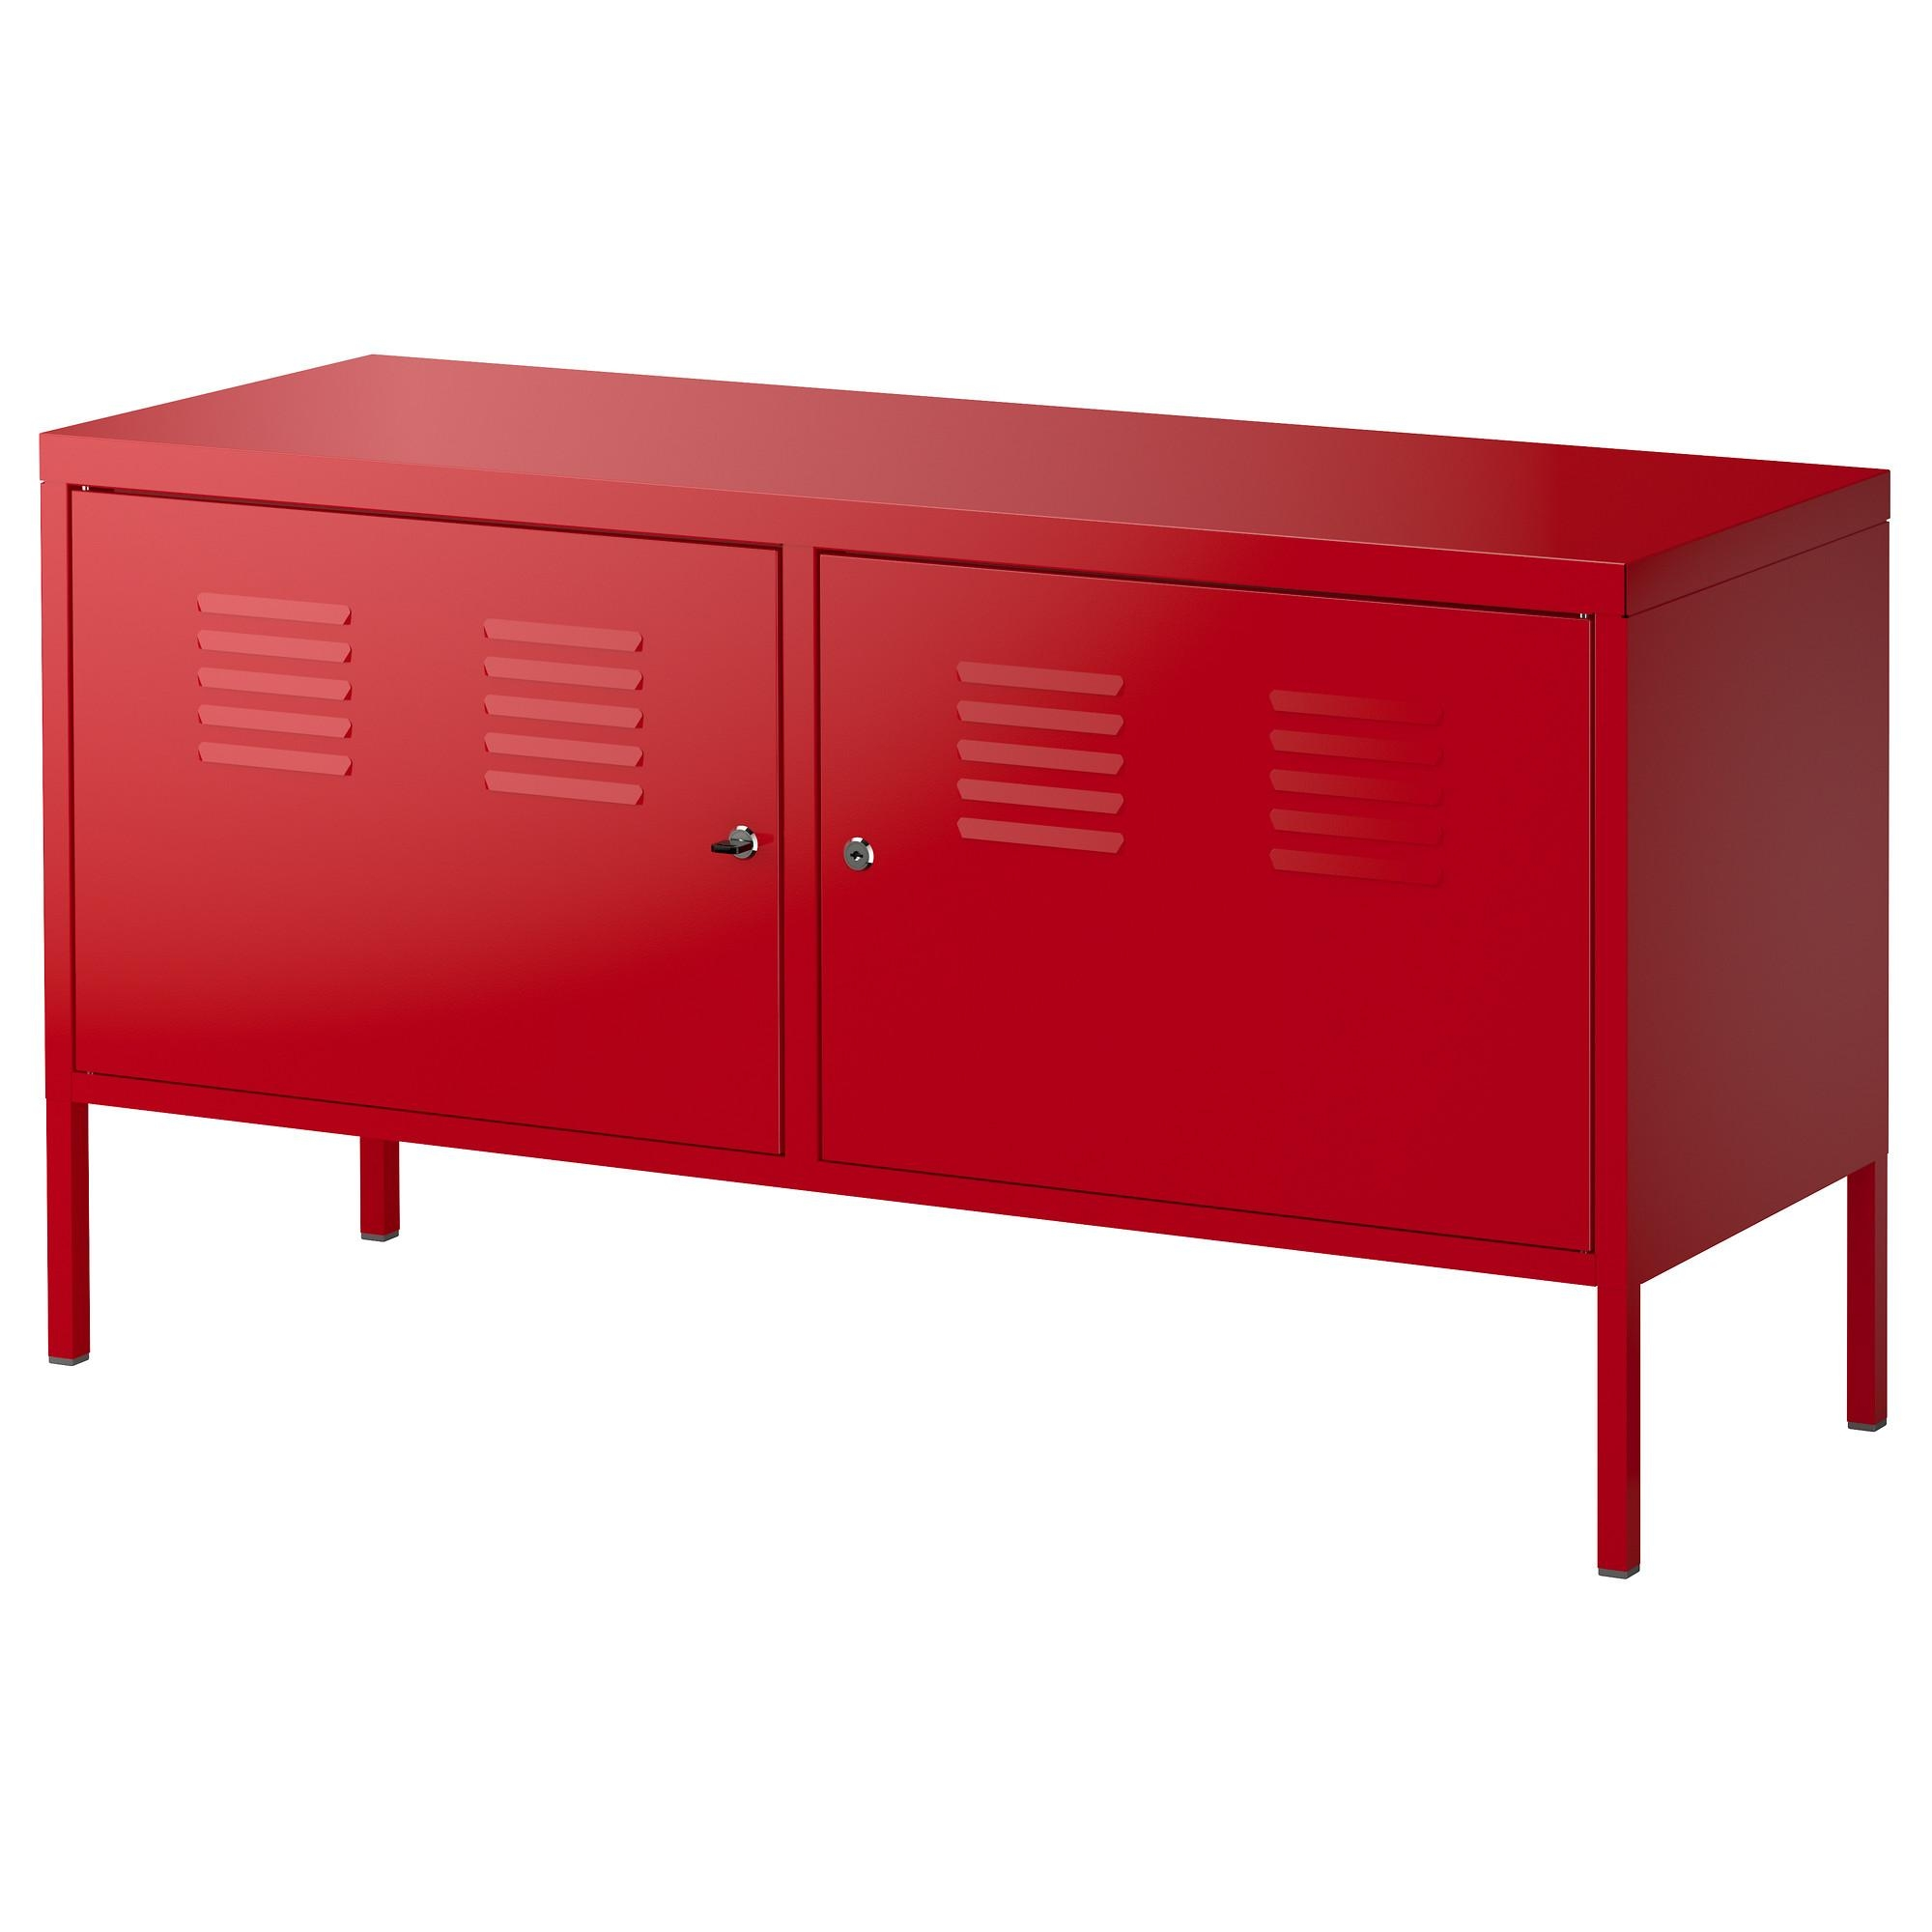 Console Tables, Sofa Tables & Sideboards – Ikea Regarding Red Sofa Tables (Image 2 of 20)